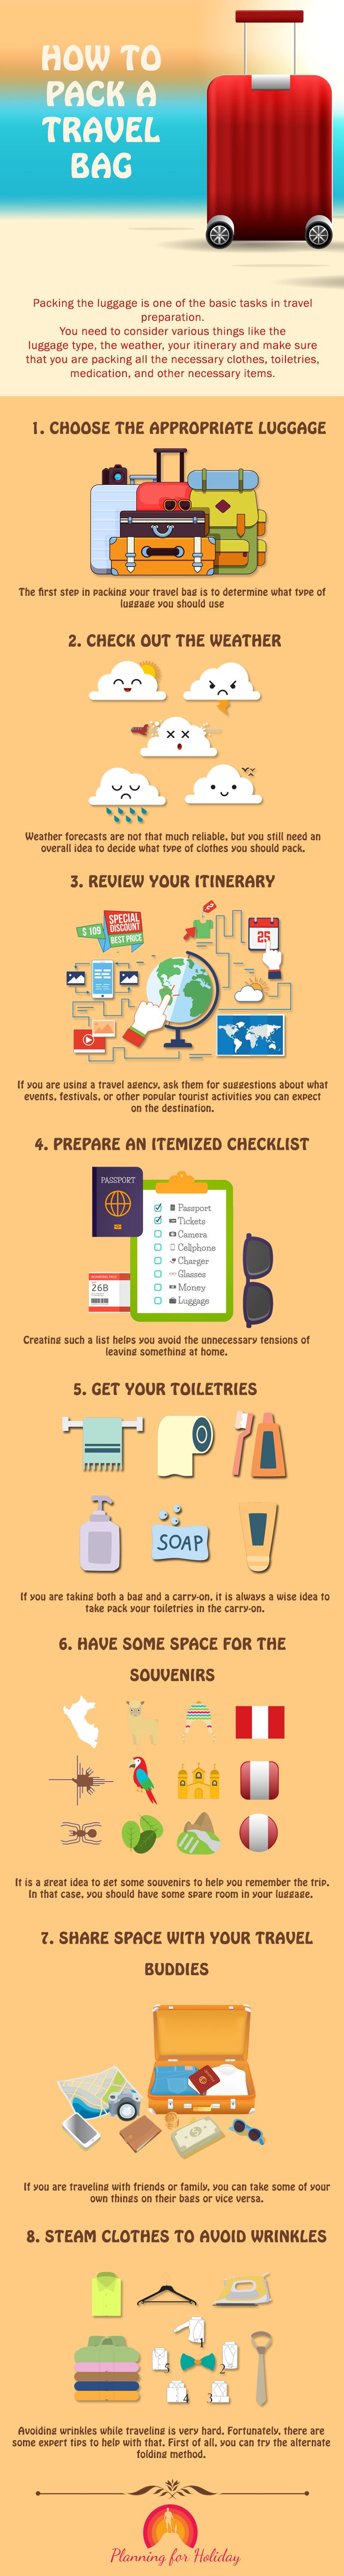 #Packing the luggage is one of the basic tasks in #travel preparation. Want to follow the best practices of packing for travel? Check out these 8 techniques that will help you pack your travel bag. Missing any of these might ruin your whole #trip. #TravelGuide #Traveling #TravelDestinations #vacation